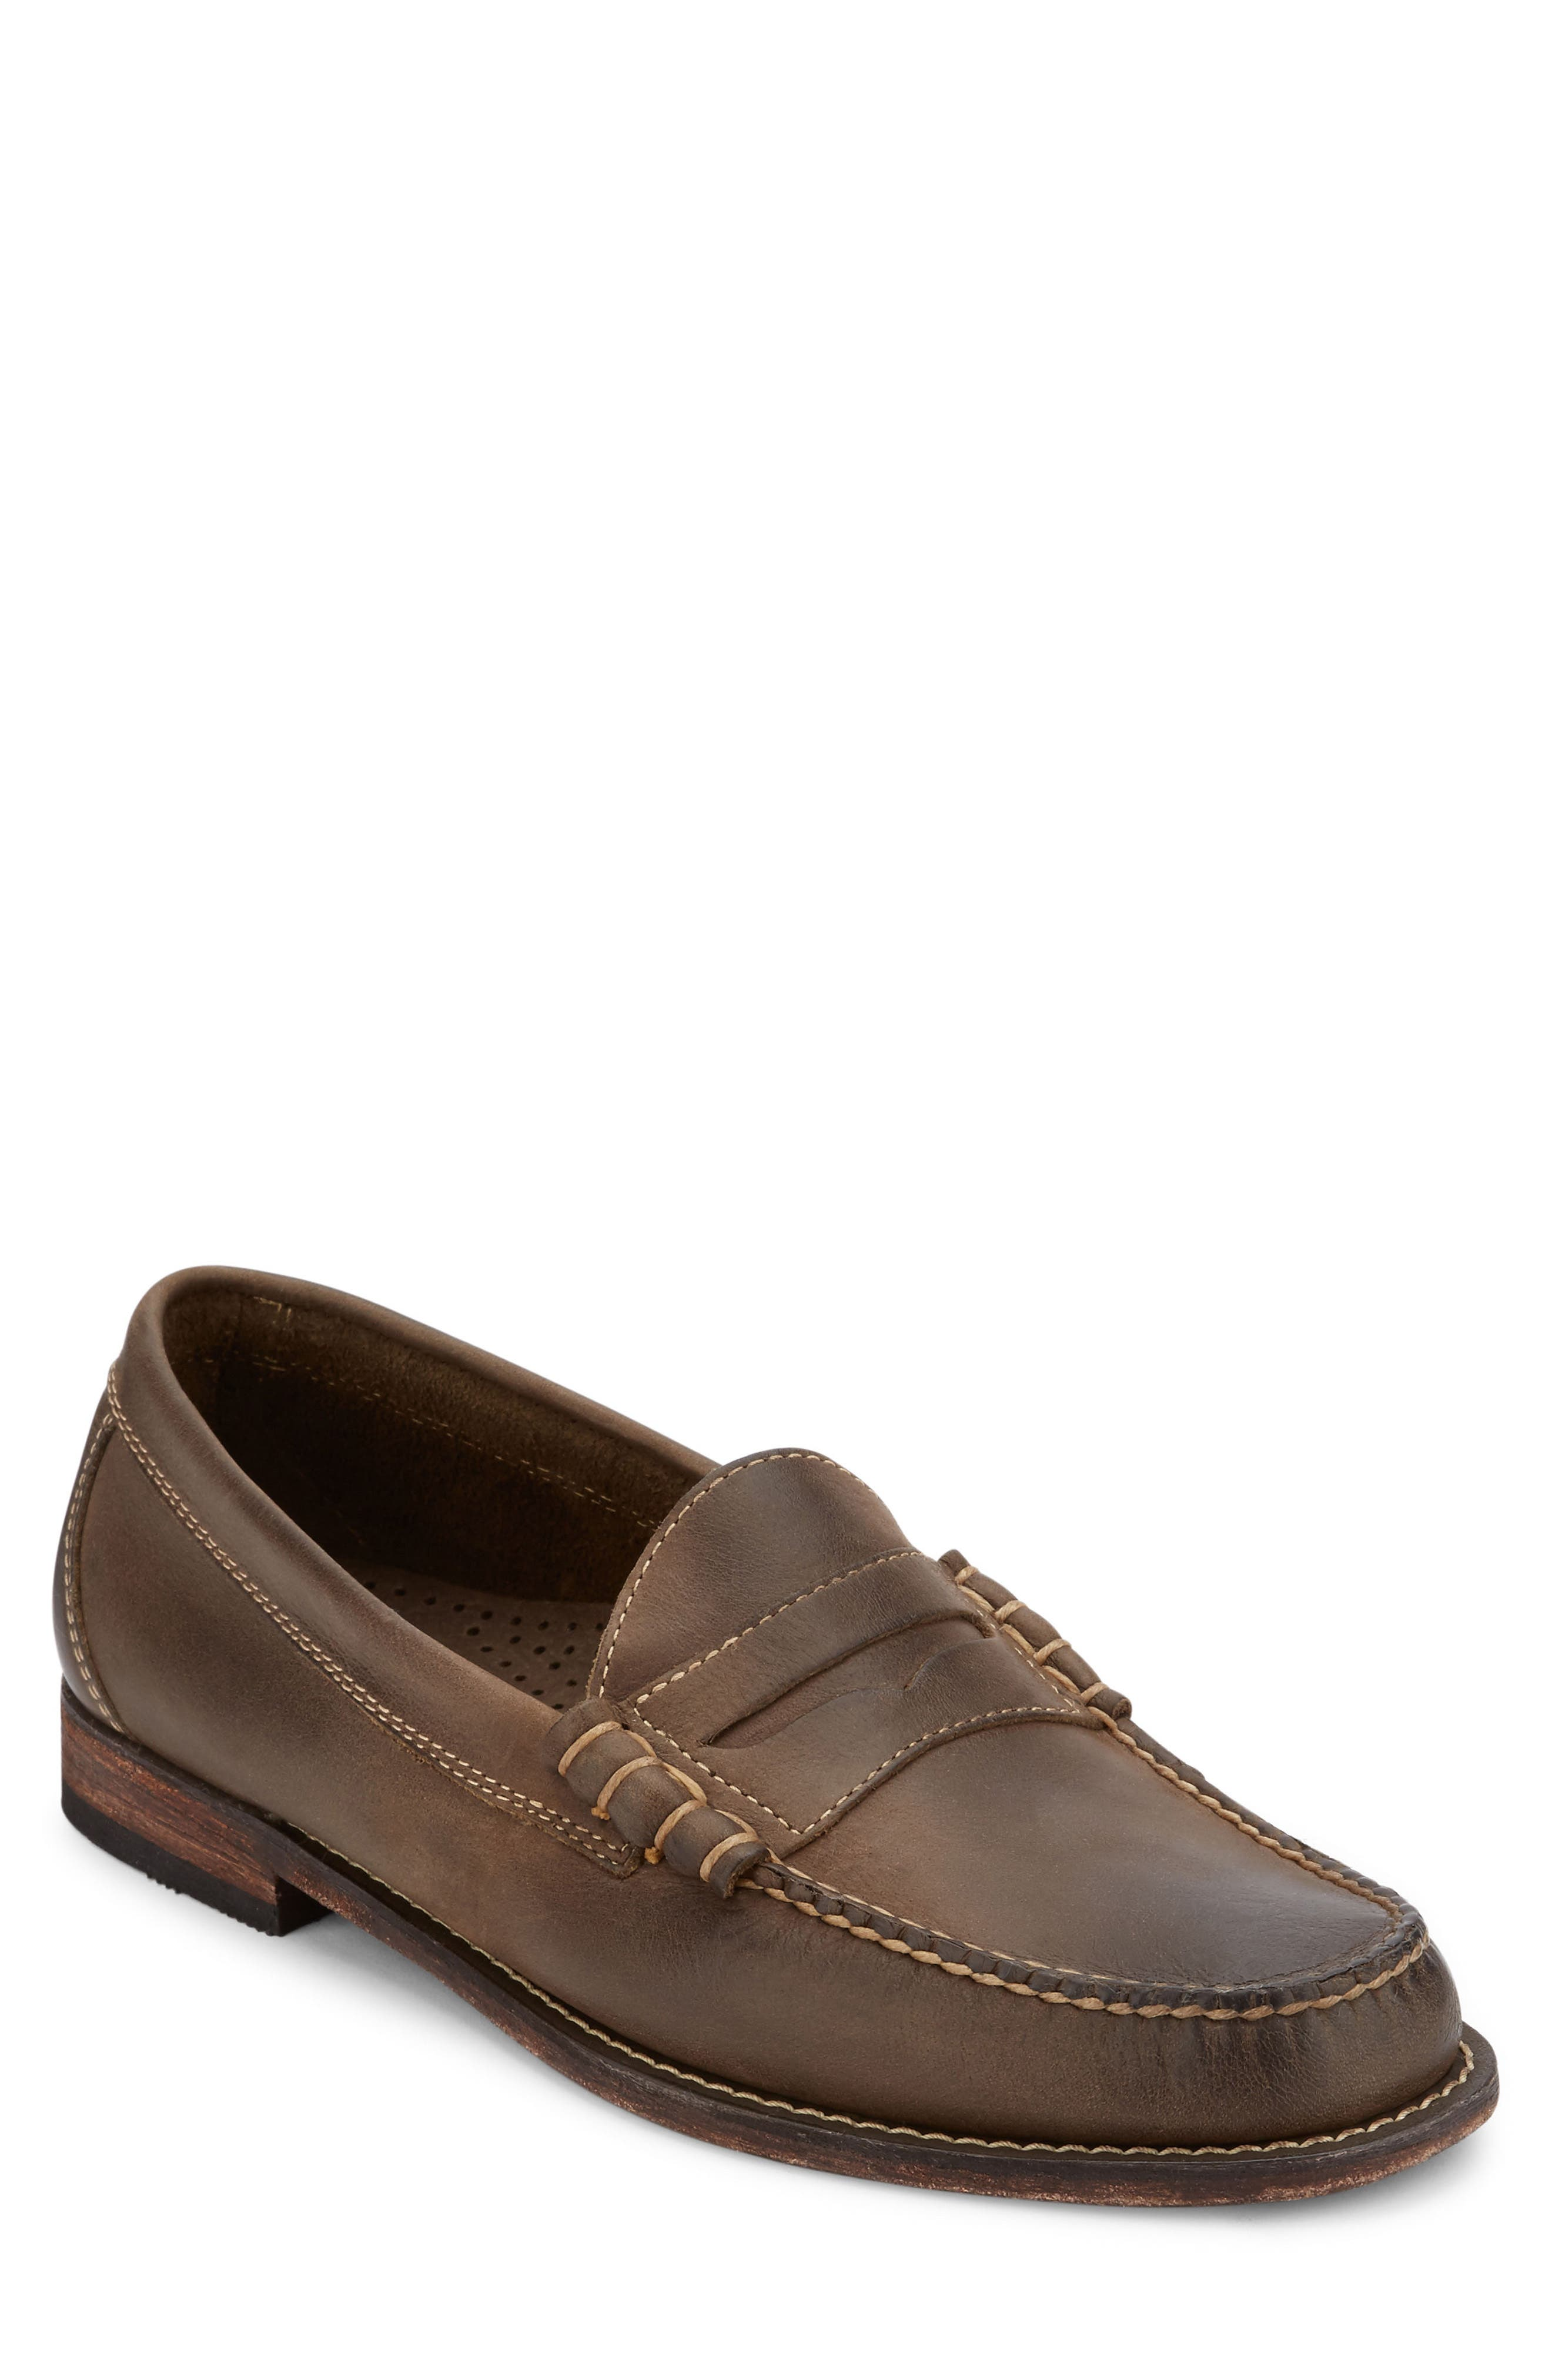 Hayden Penny Loafer,                             Main thumbnail 1, color,                             Brown